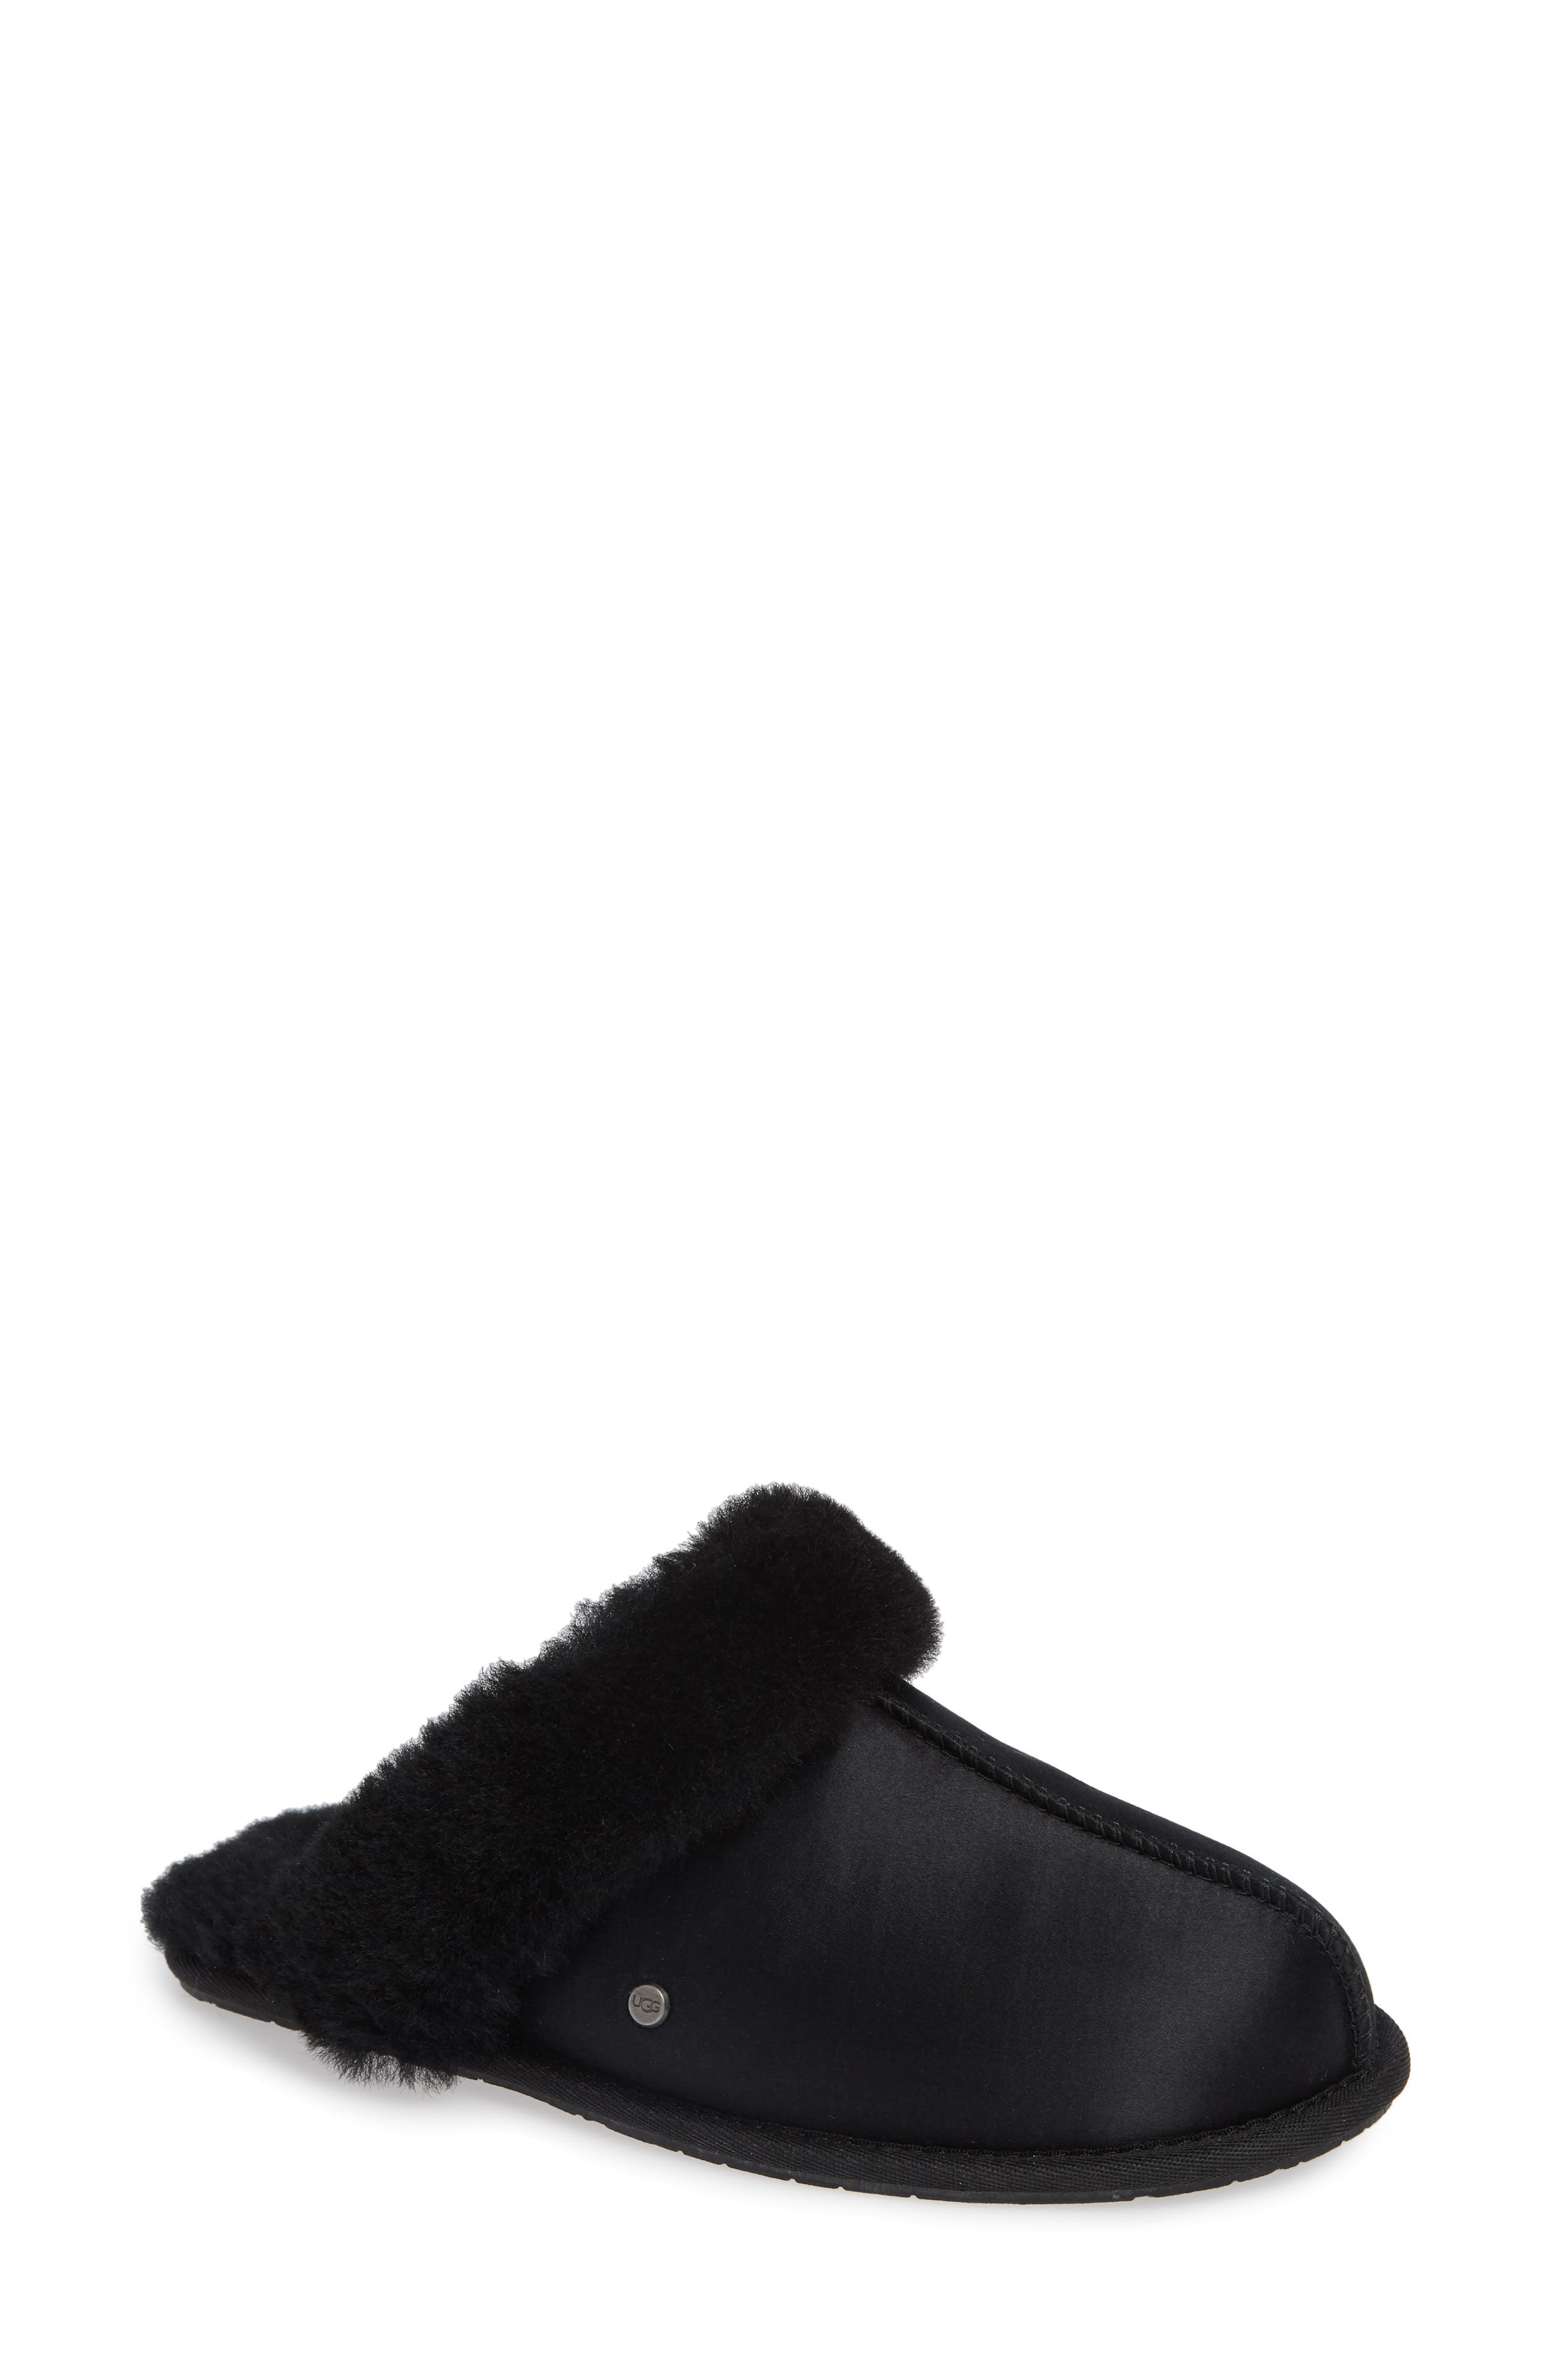 UGG<SUP>®</SUP>, Scuffette II Satin Slipper, Main thumbnail 1, color, 001